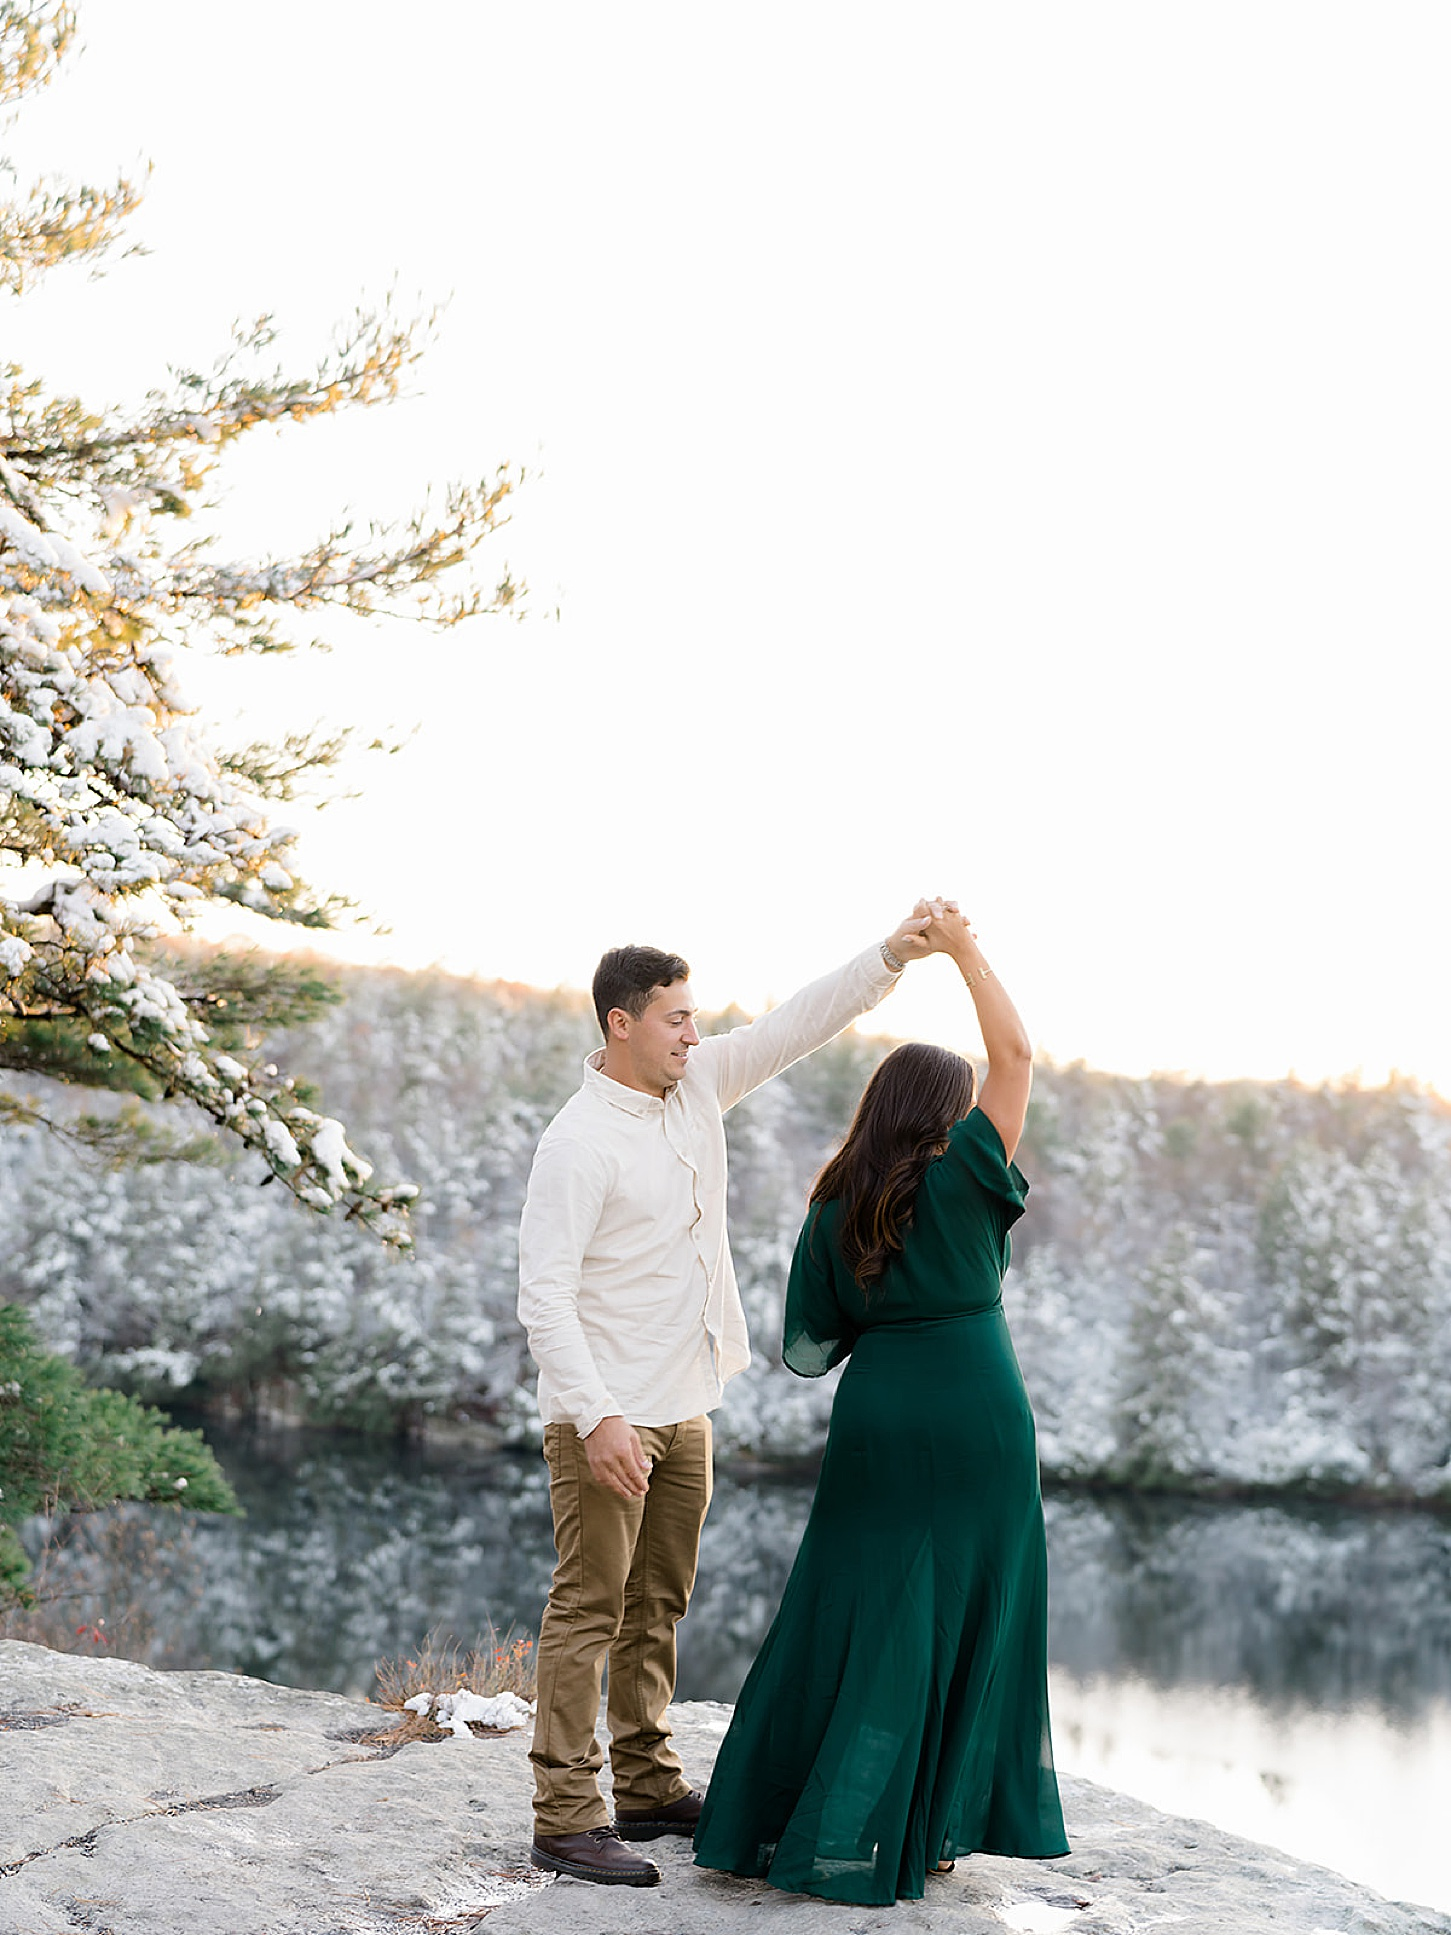 Vermont Destination Engagement Photography by Magdalena Studios 0007